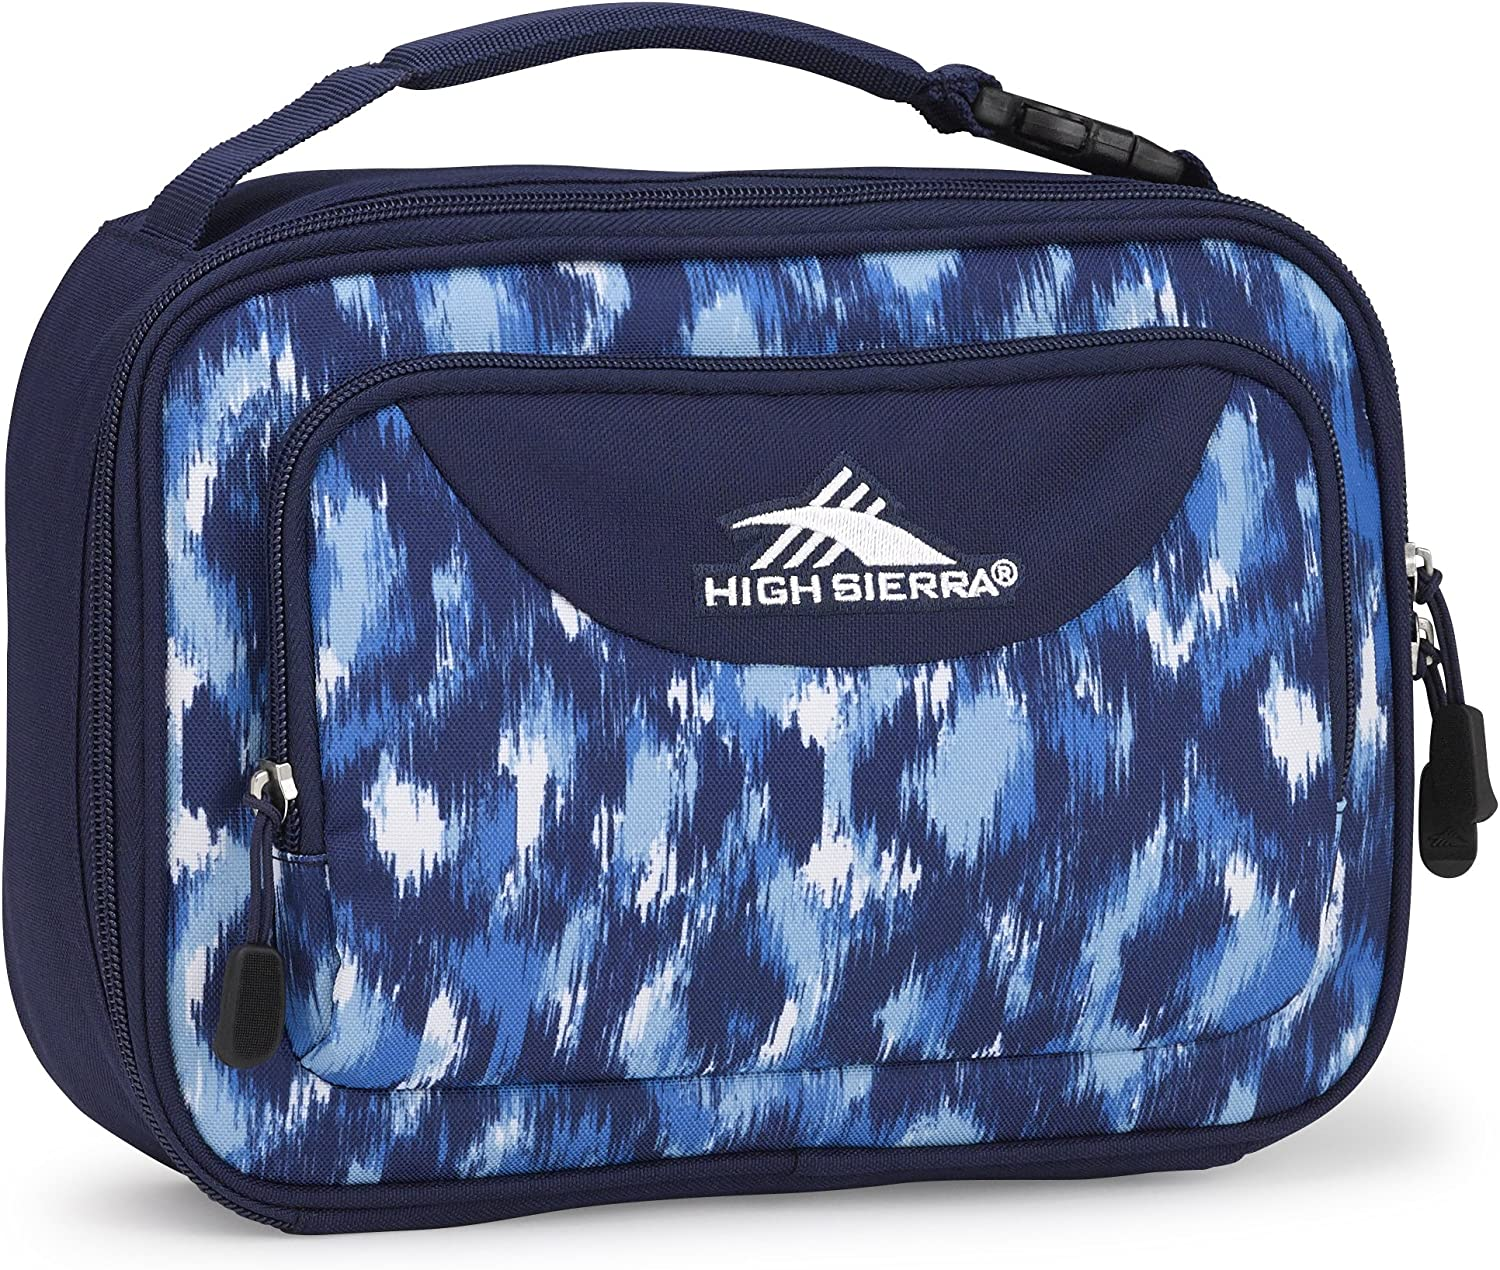 High Sierra Single Compartment Lunch Bag, One Size, Island Ikat/True Navy